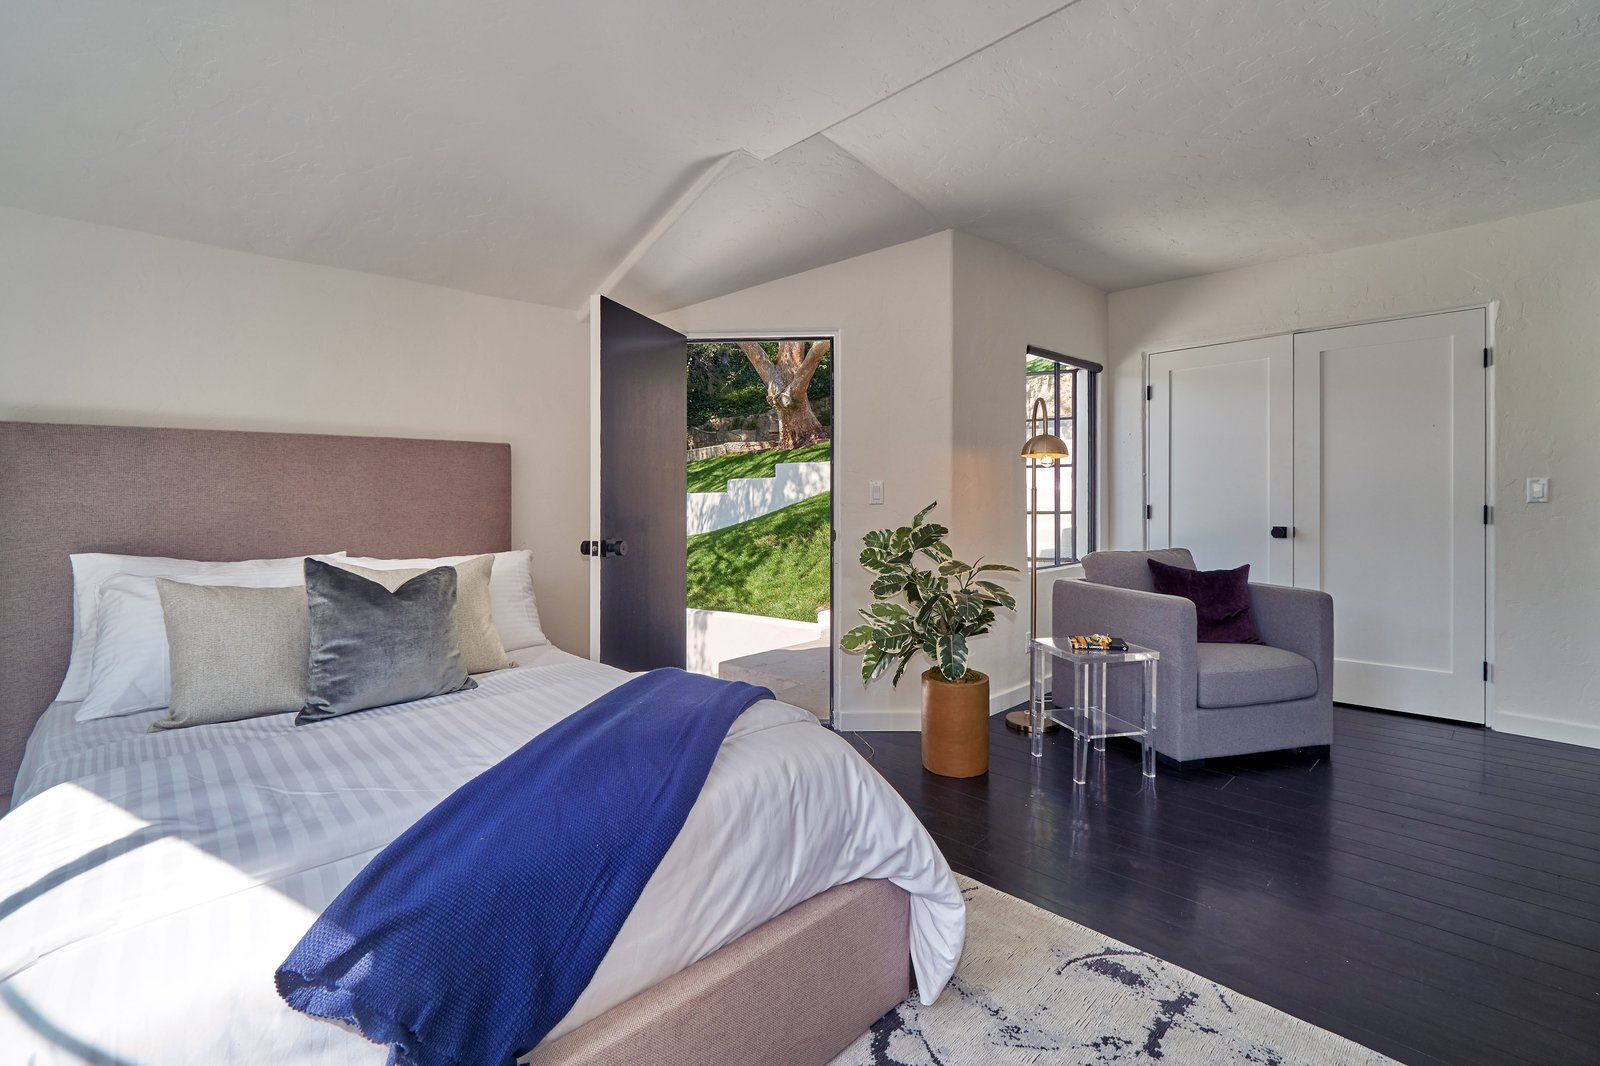 Bedroom, Chair, Dark Hardwood Floor, Bed, Floor Lighting, and Rug Floor The private entrance leads to the backyard.     Photo 18 of 20 in Snatch Up James Dean's Former Hollywood Home For $4M